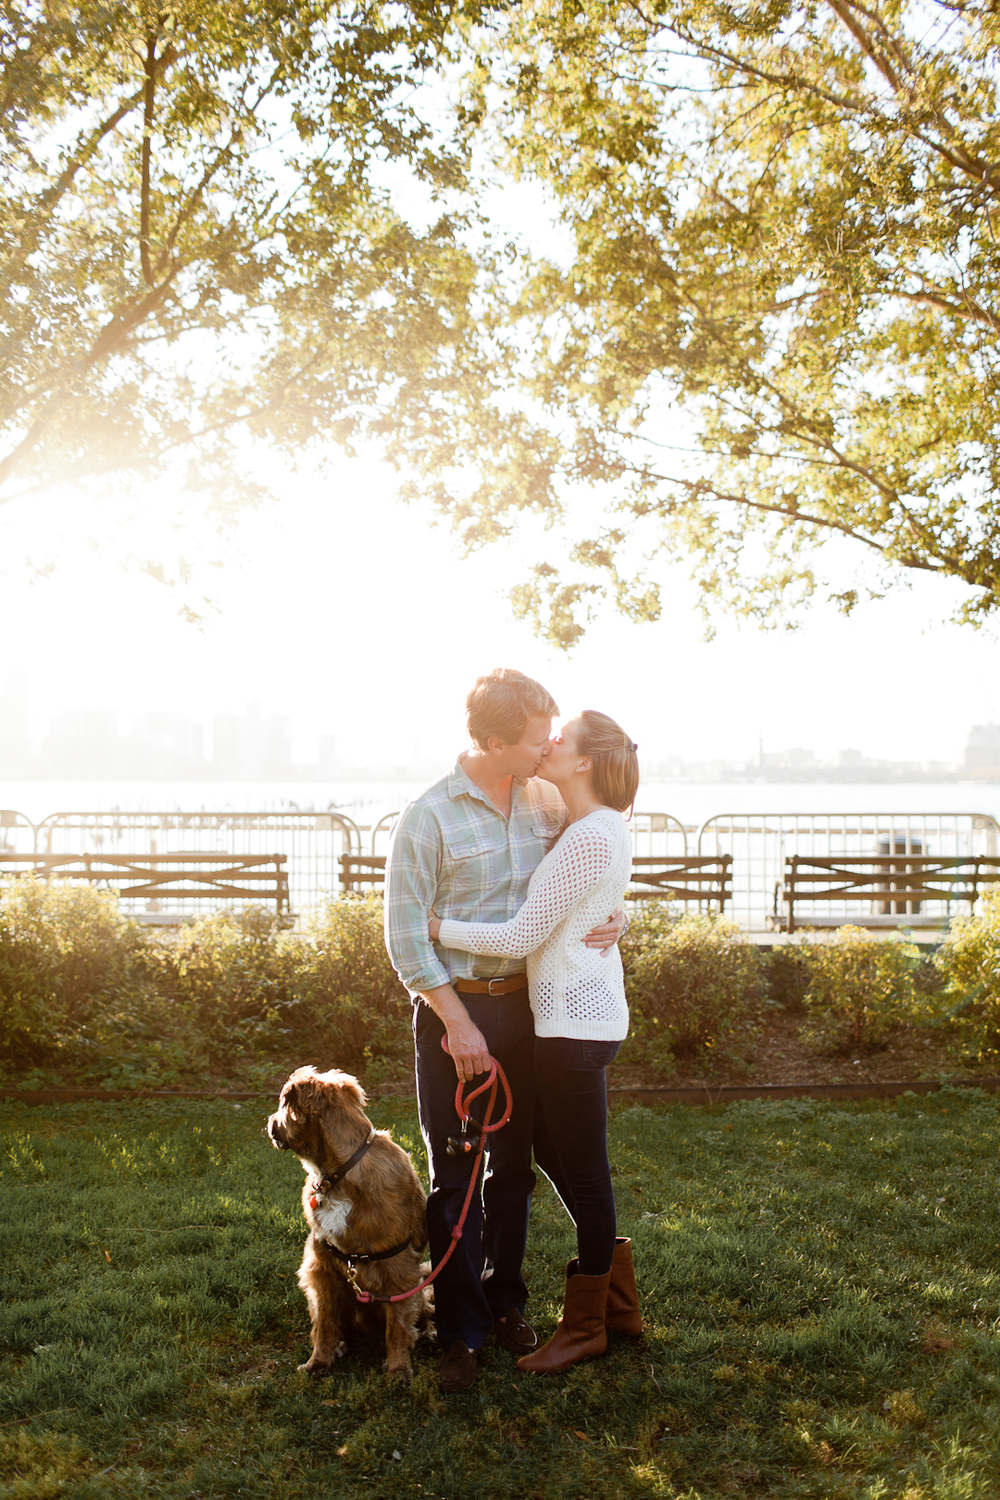 Melissa Kruse Photography - Megan & Tyler West Village Engagement Photos-105.jpg